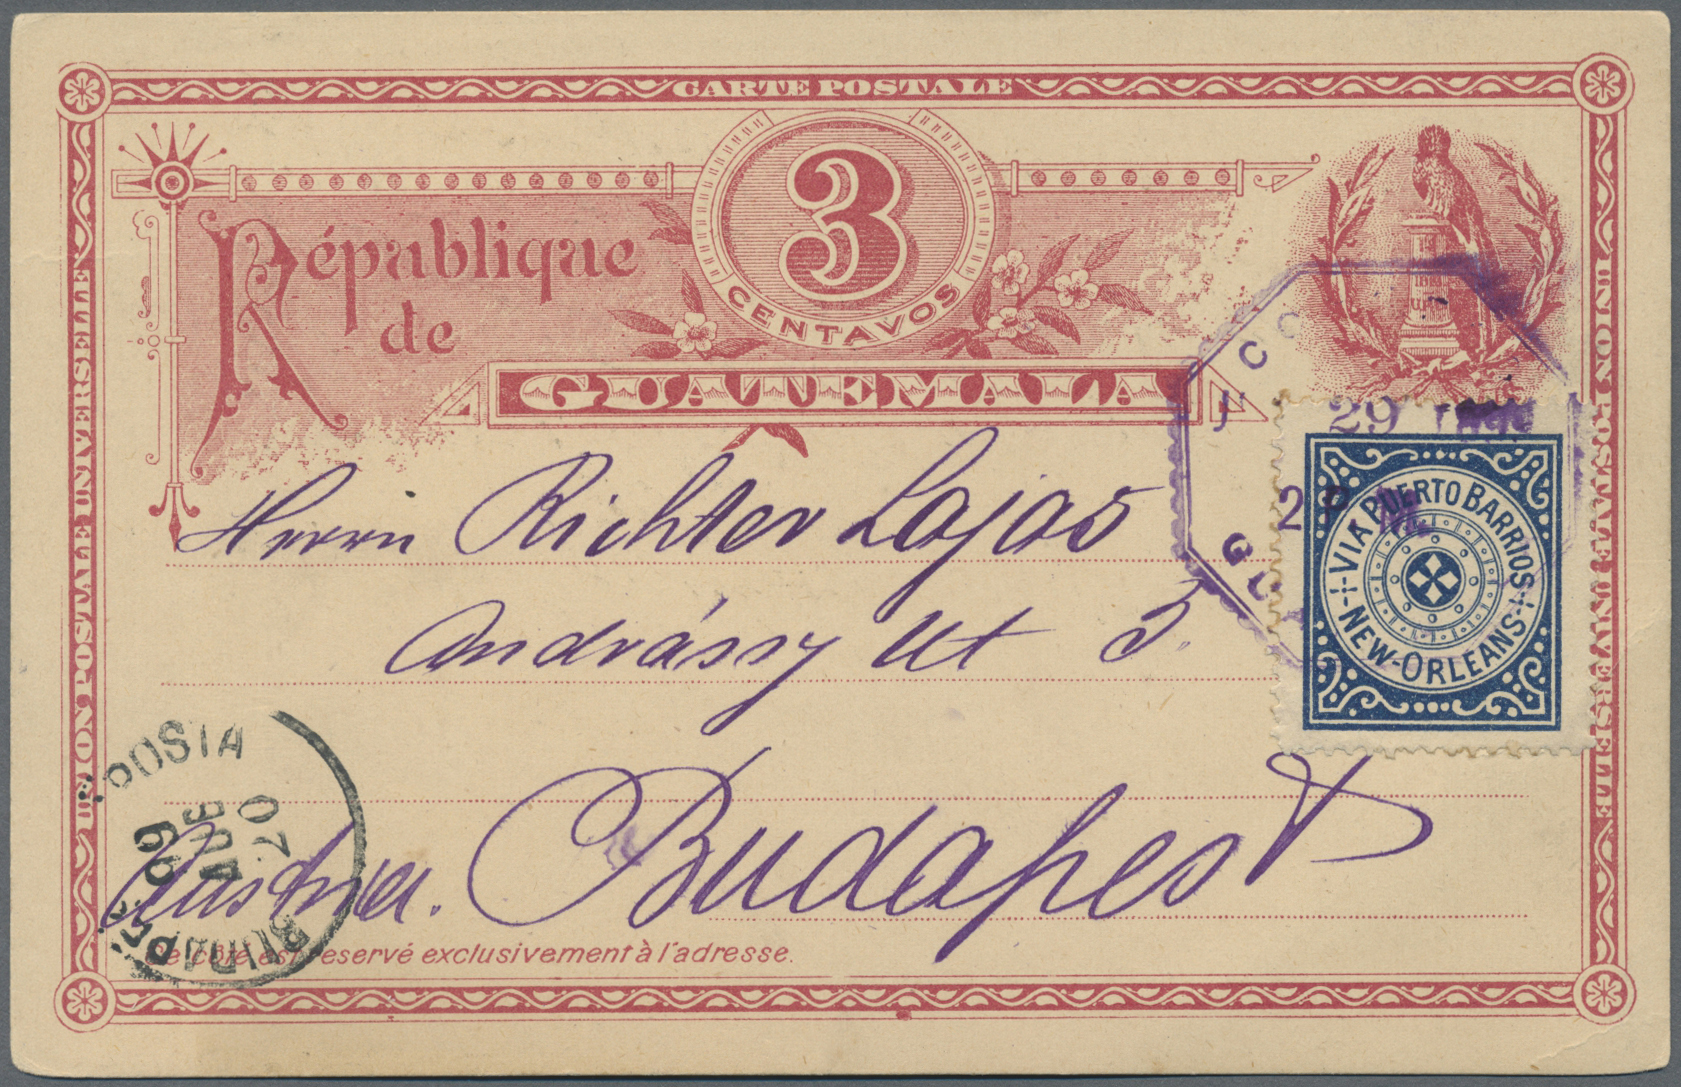 Lot 13824 - guatemala  -  Auktionshaus Christoph Gärtner GmbH & Co. KG Single lots Philately Overseas & Europe. Auction #39 Day 4